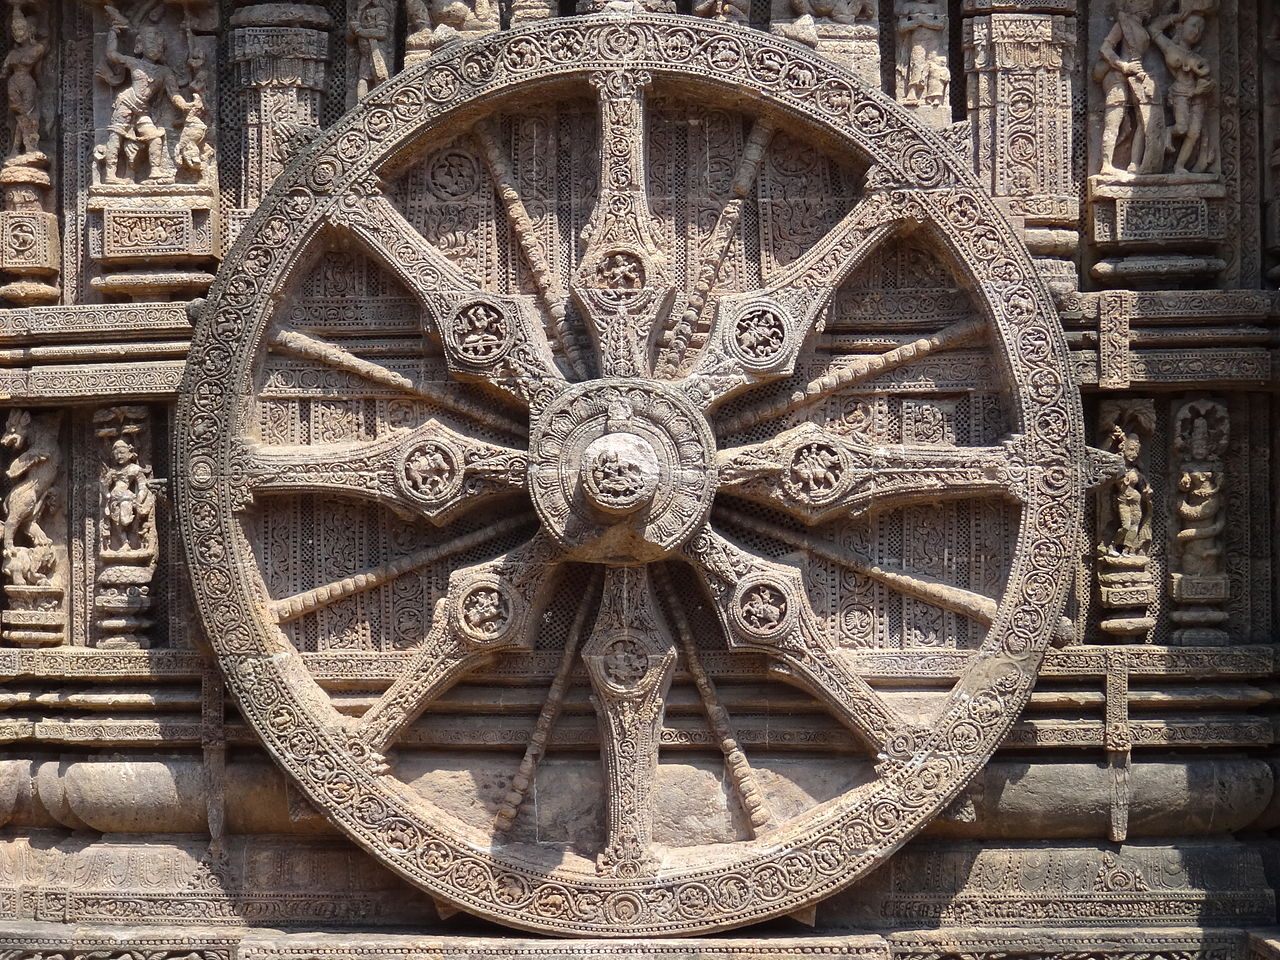 1280px-Konark_Sun_Temple_Wheel.jpg (1280×960)